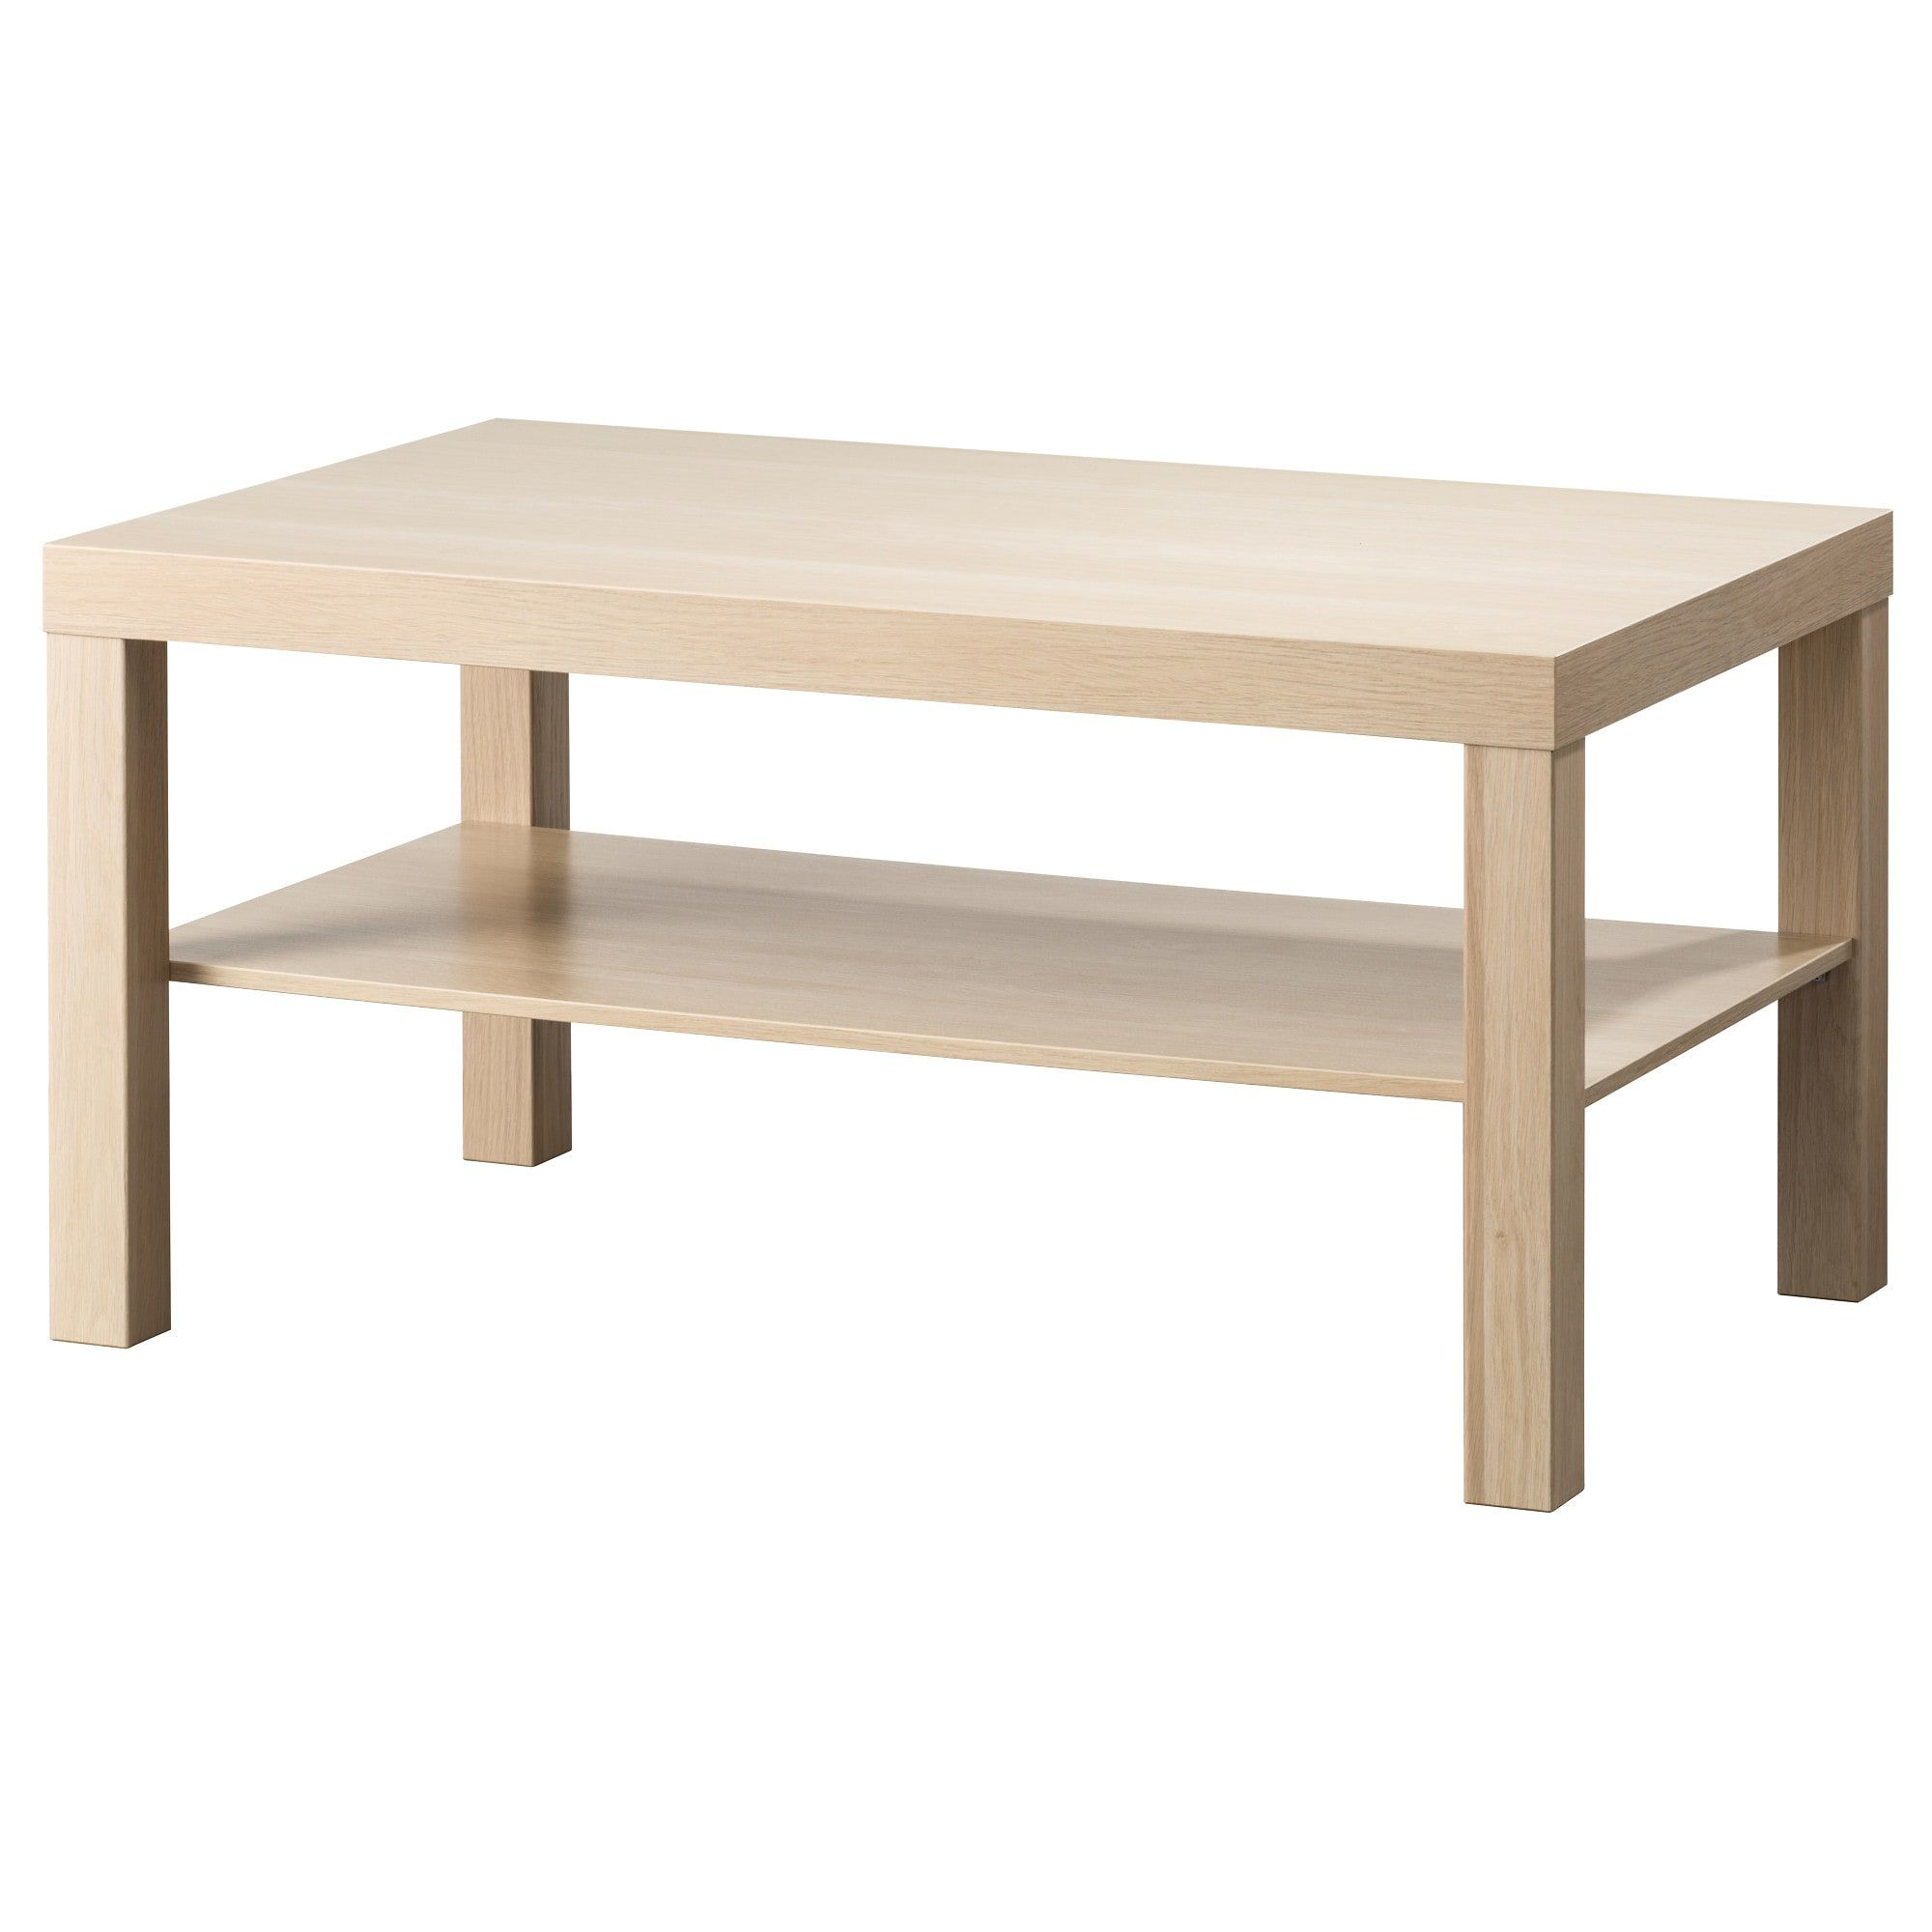 Amazing Ikea Lack White Stained Oak Effect Coffee Table In 2019 Gamerscity Chair Design For Home Gamerscityorg